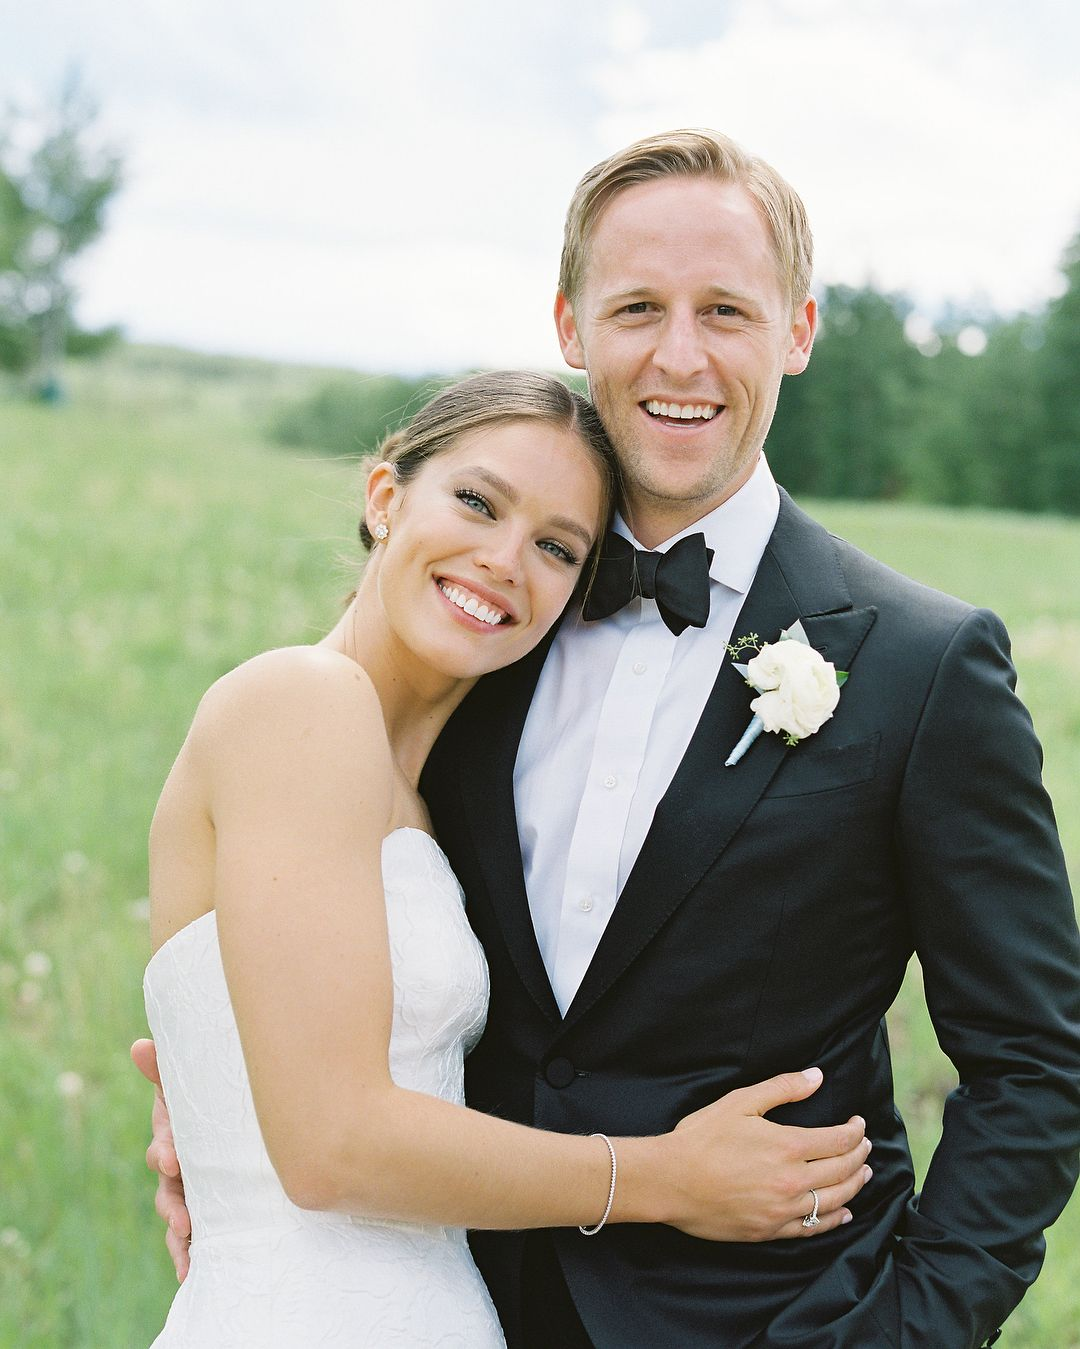 Emily didonato just married kyle peterson in colorado brides